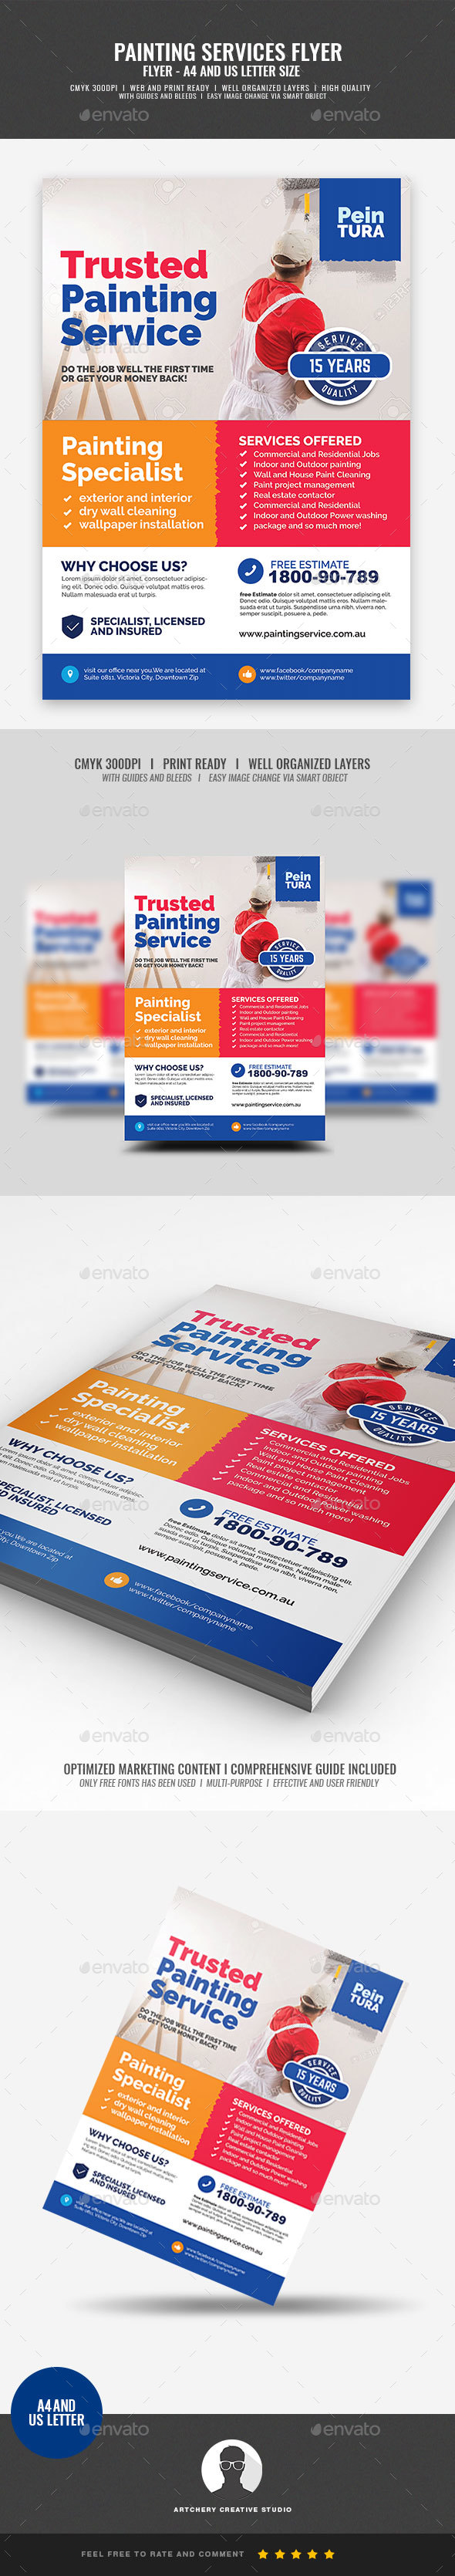 Commercial Painting Promotional Flyer - Corporate Flyers